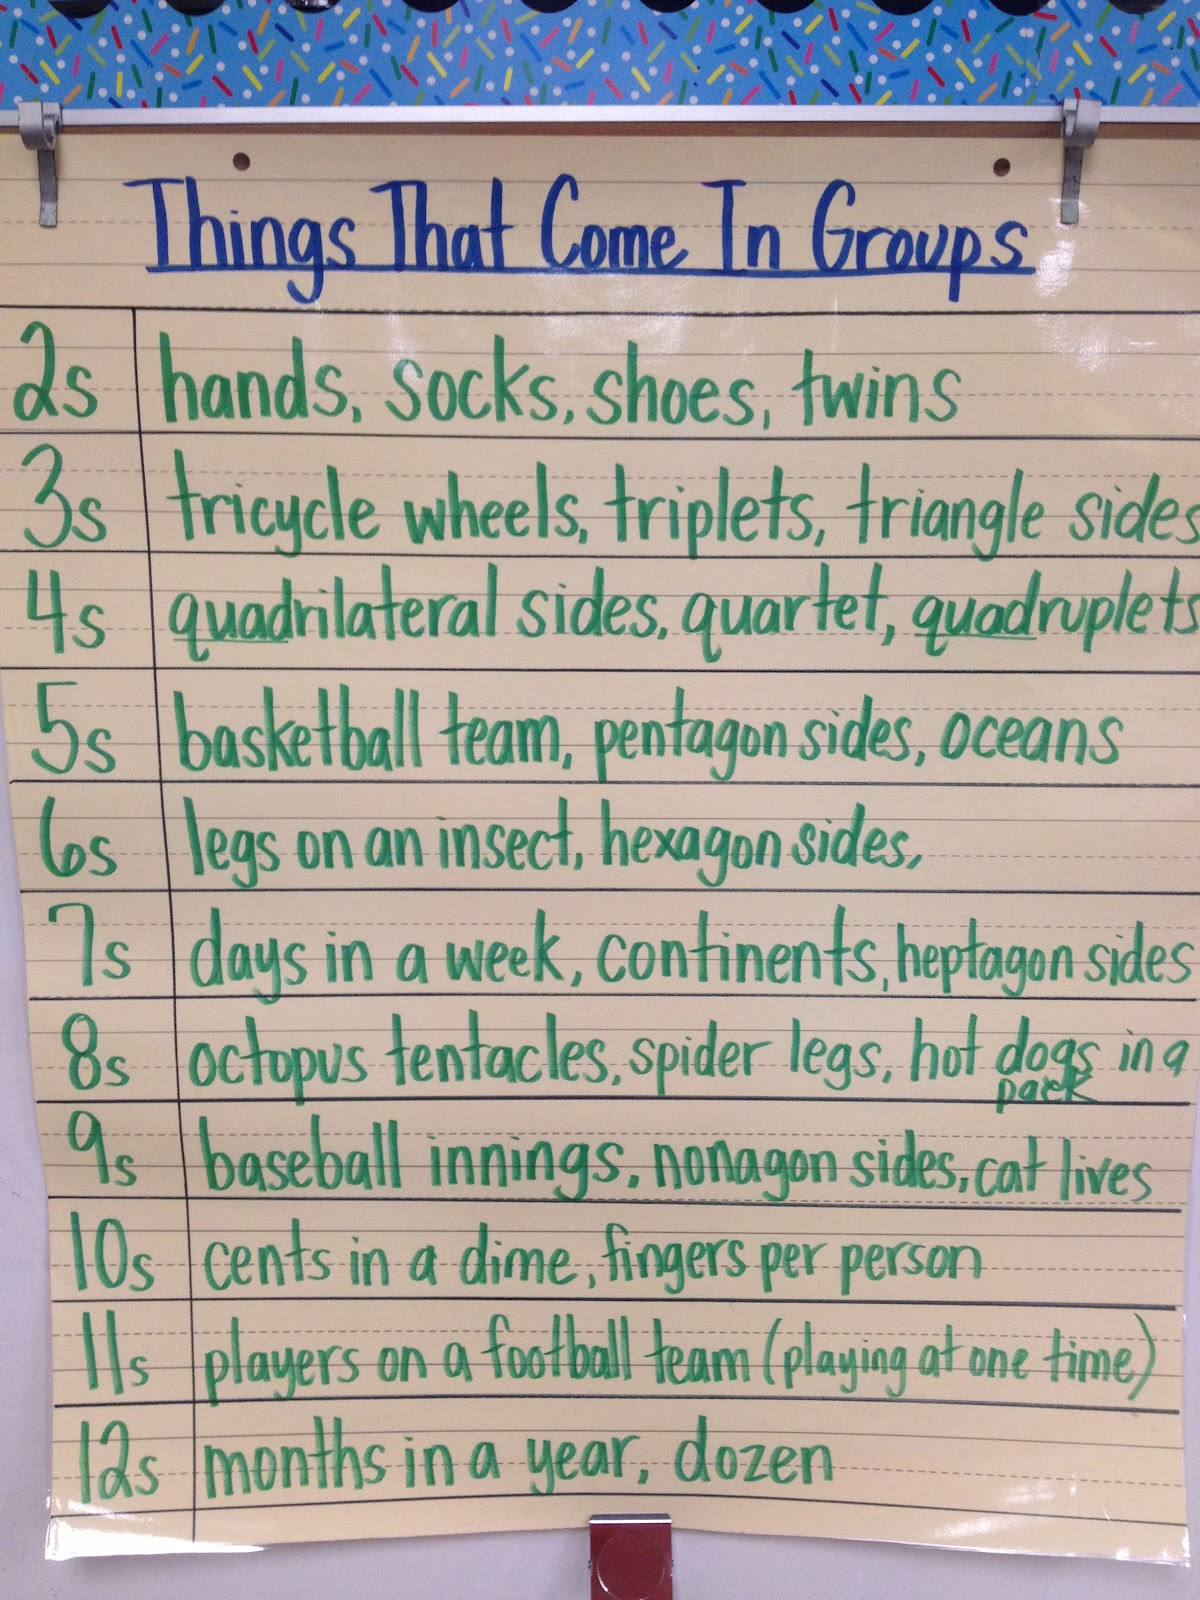 Coaching chronicles 2012 things that come in groups nvjuhfo Images